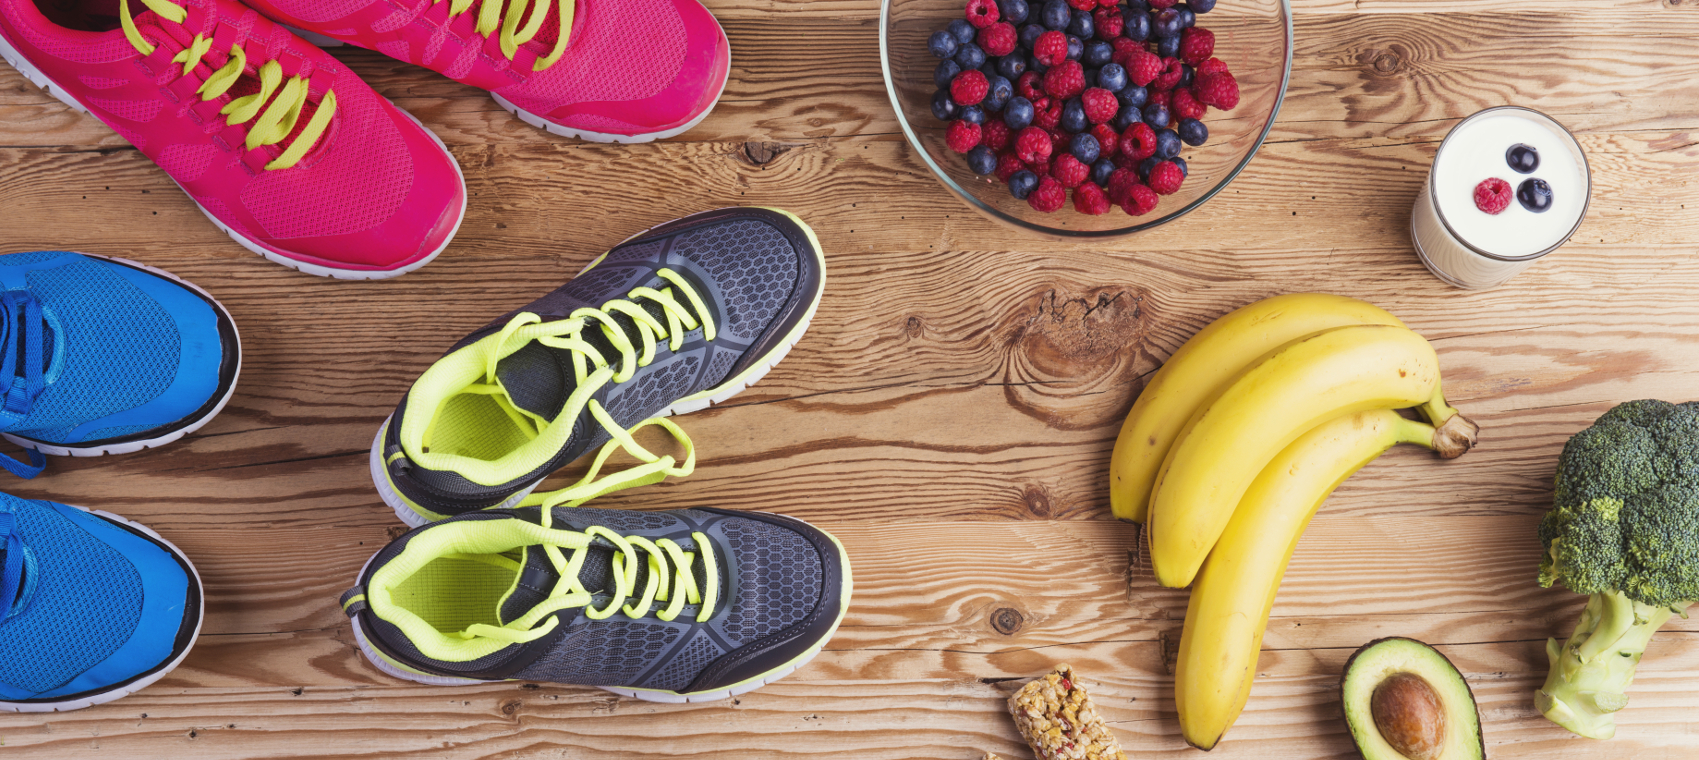 Vegetables, weights and sneakers.